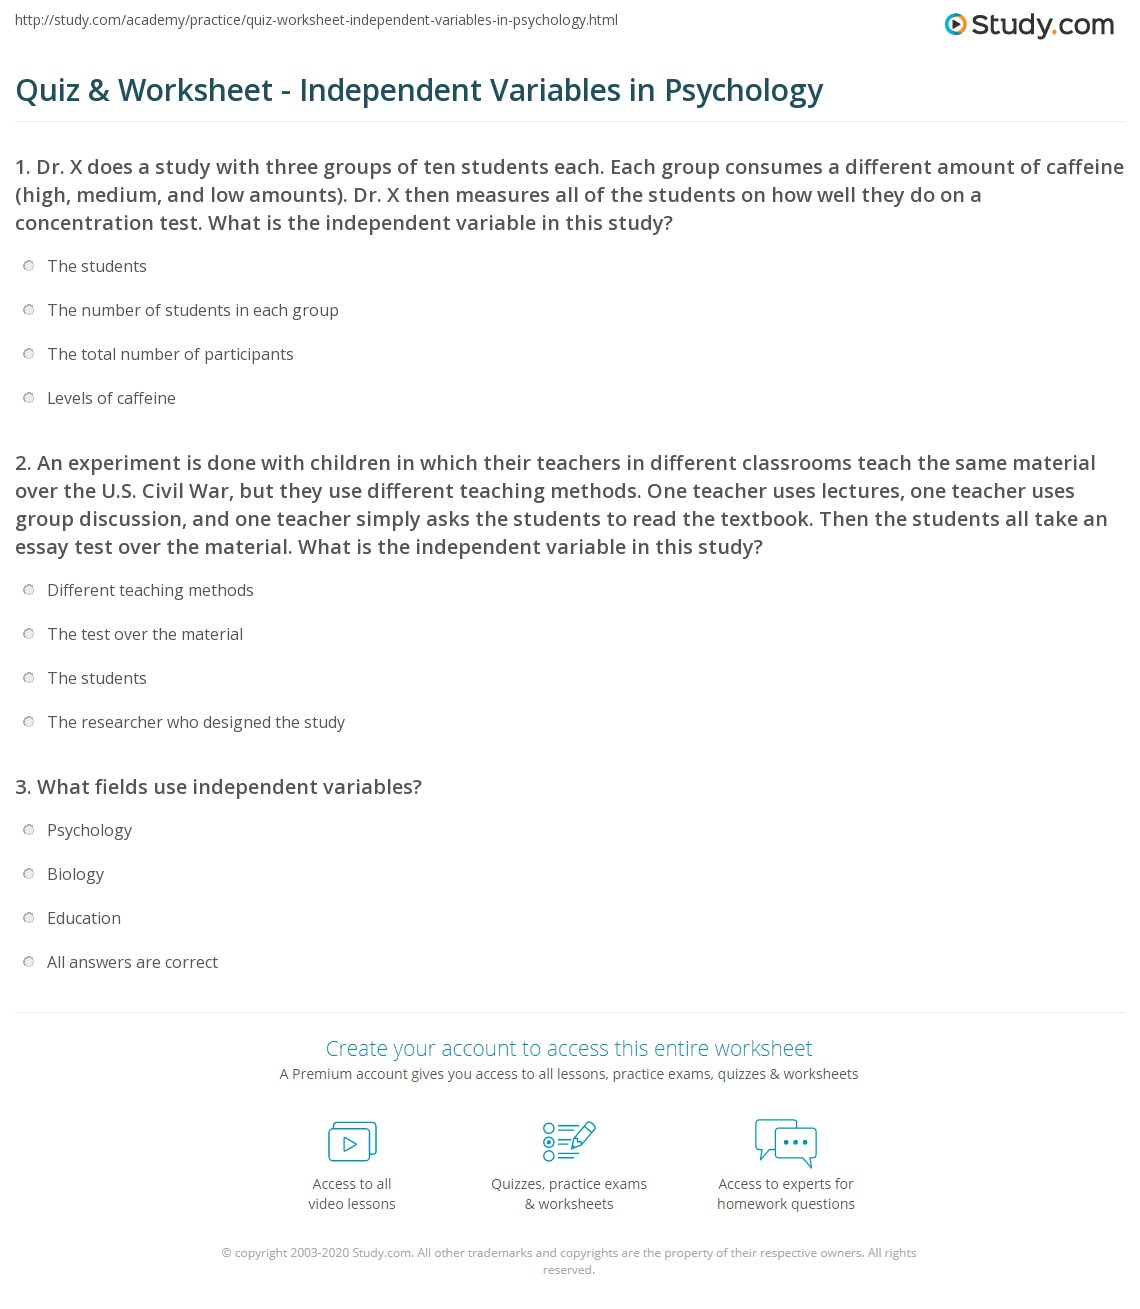 Printables Independent And Dependent Variables Worksheet Science quiz worksheet independent variables in psychology study com 1 an experiment is done with children which their teachers different classrooms teach the same material over u s civi